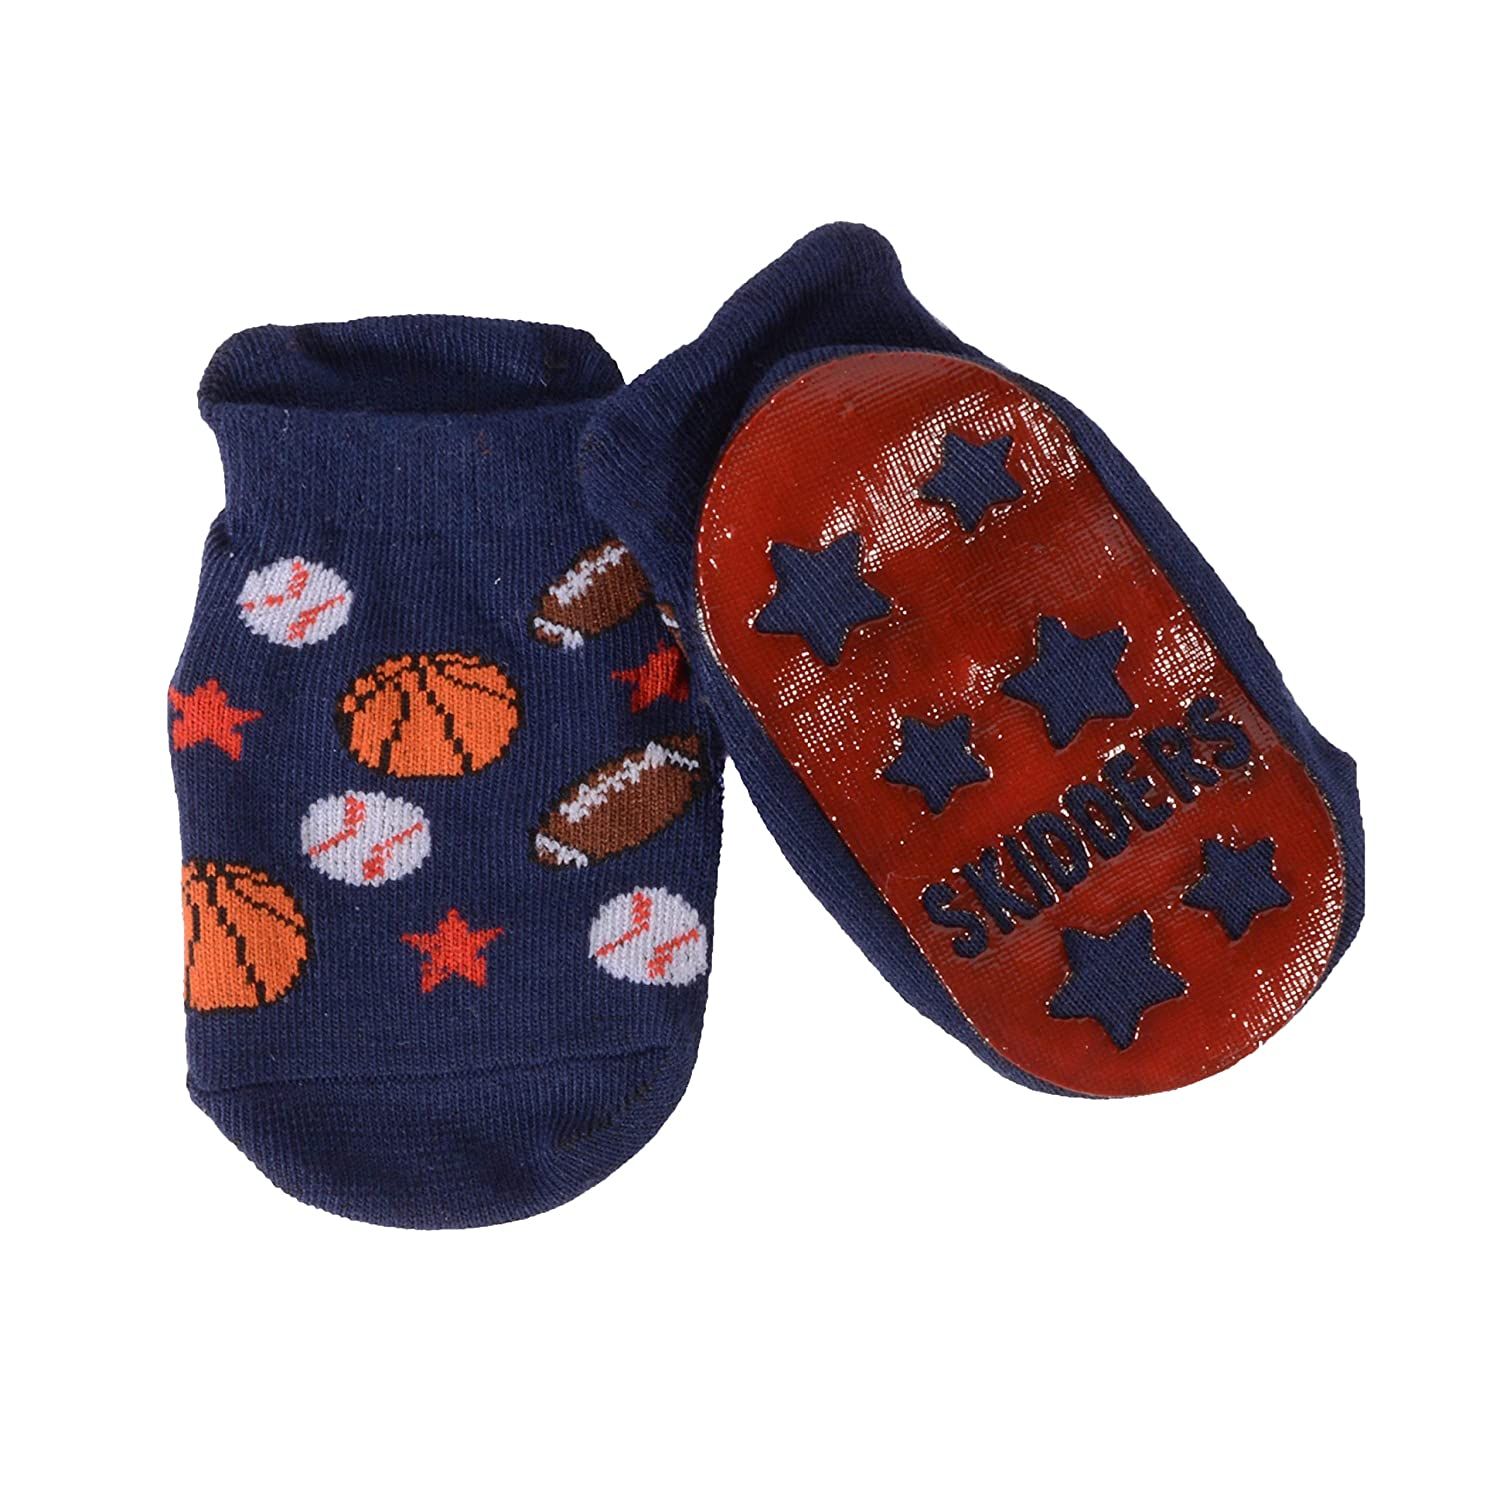 Firetruck 2 Pack Baseball SKIDDERS Baby Toddler Boy Grip Socks Bundle